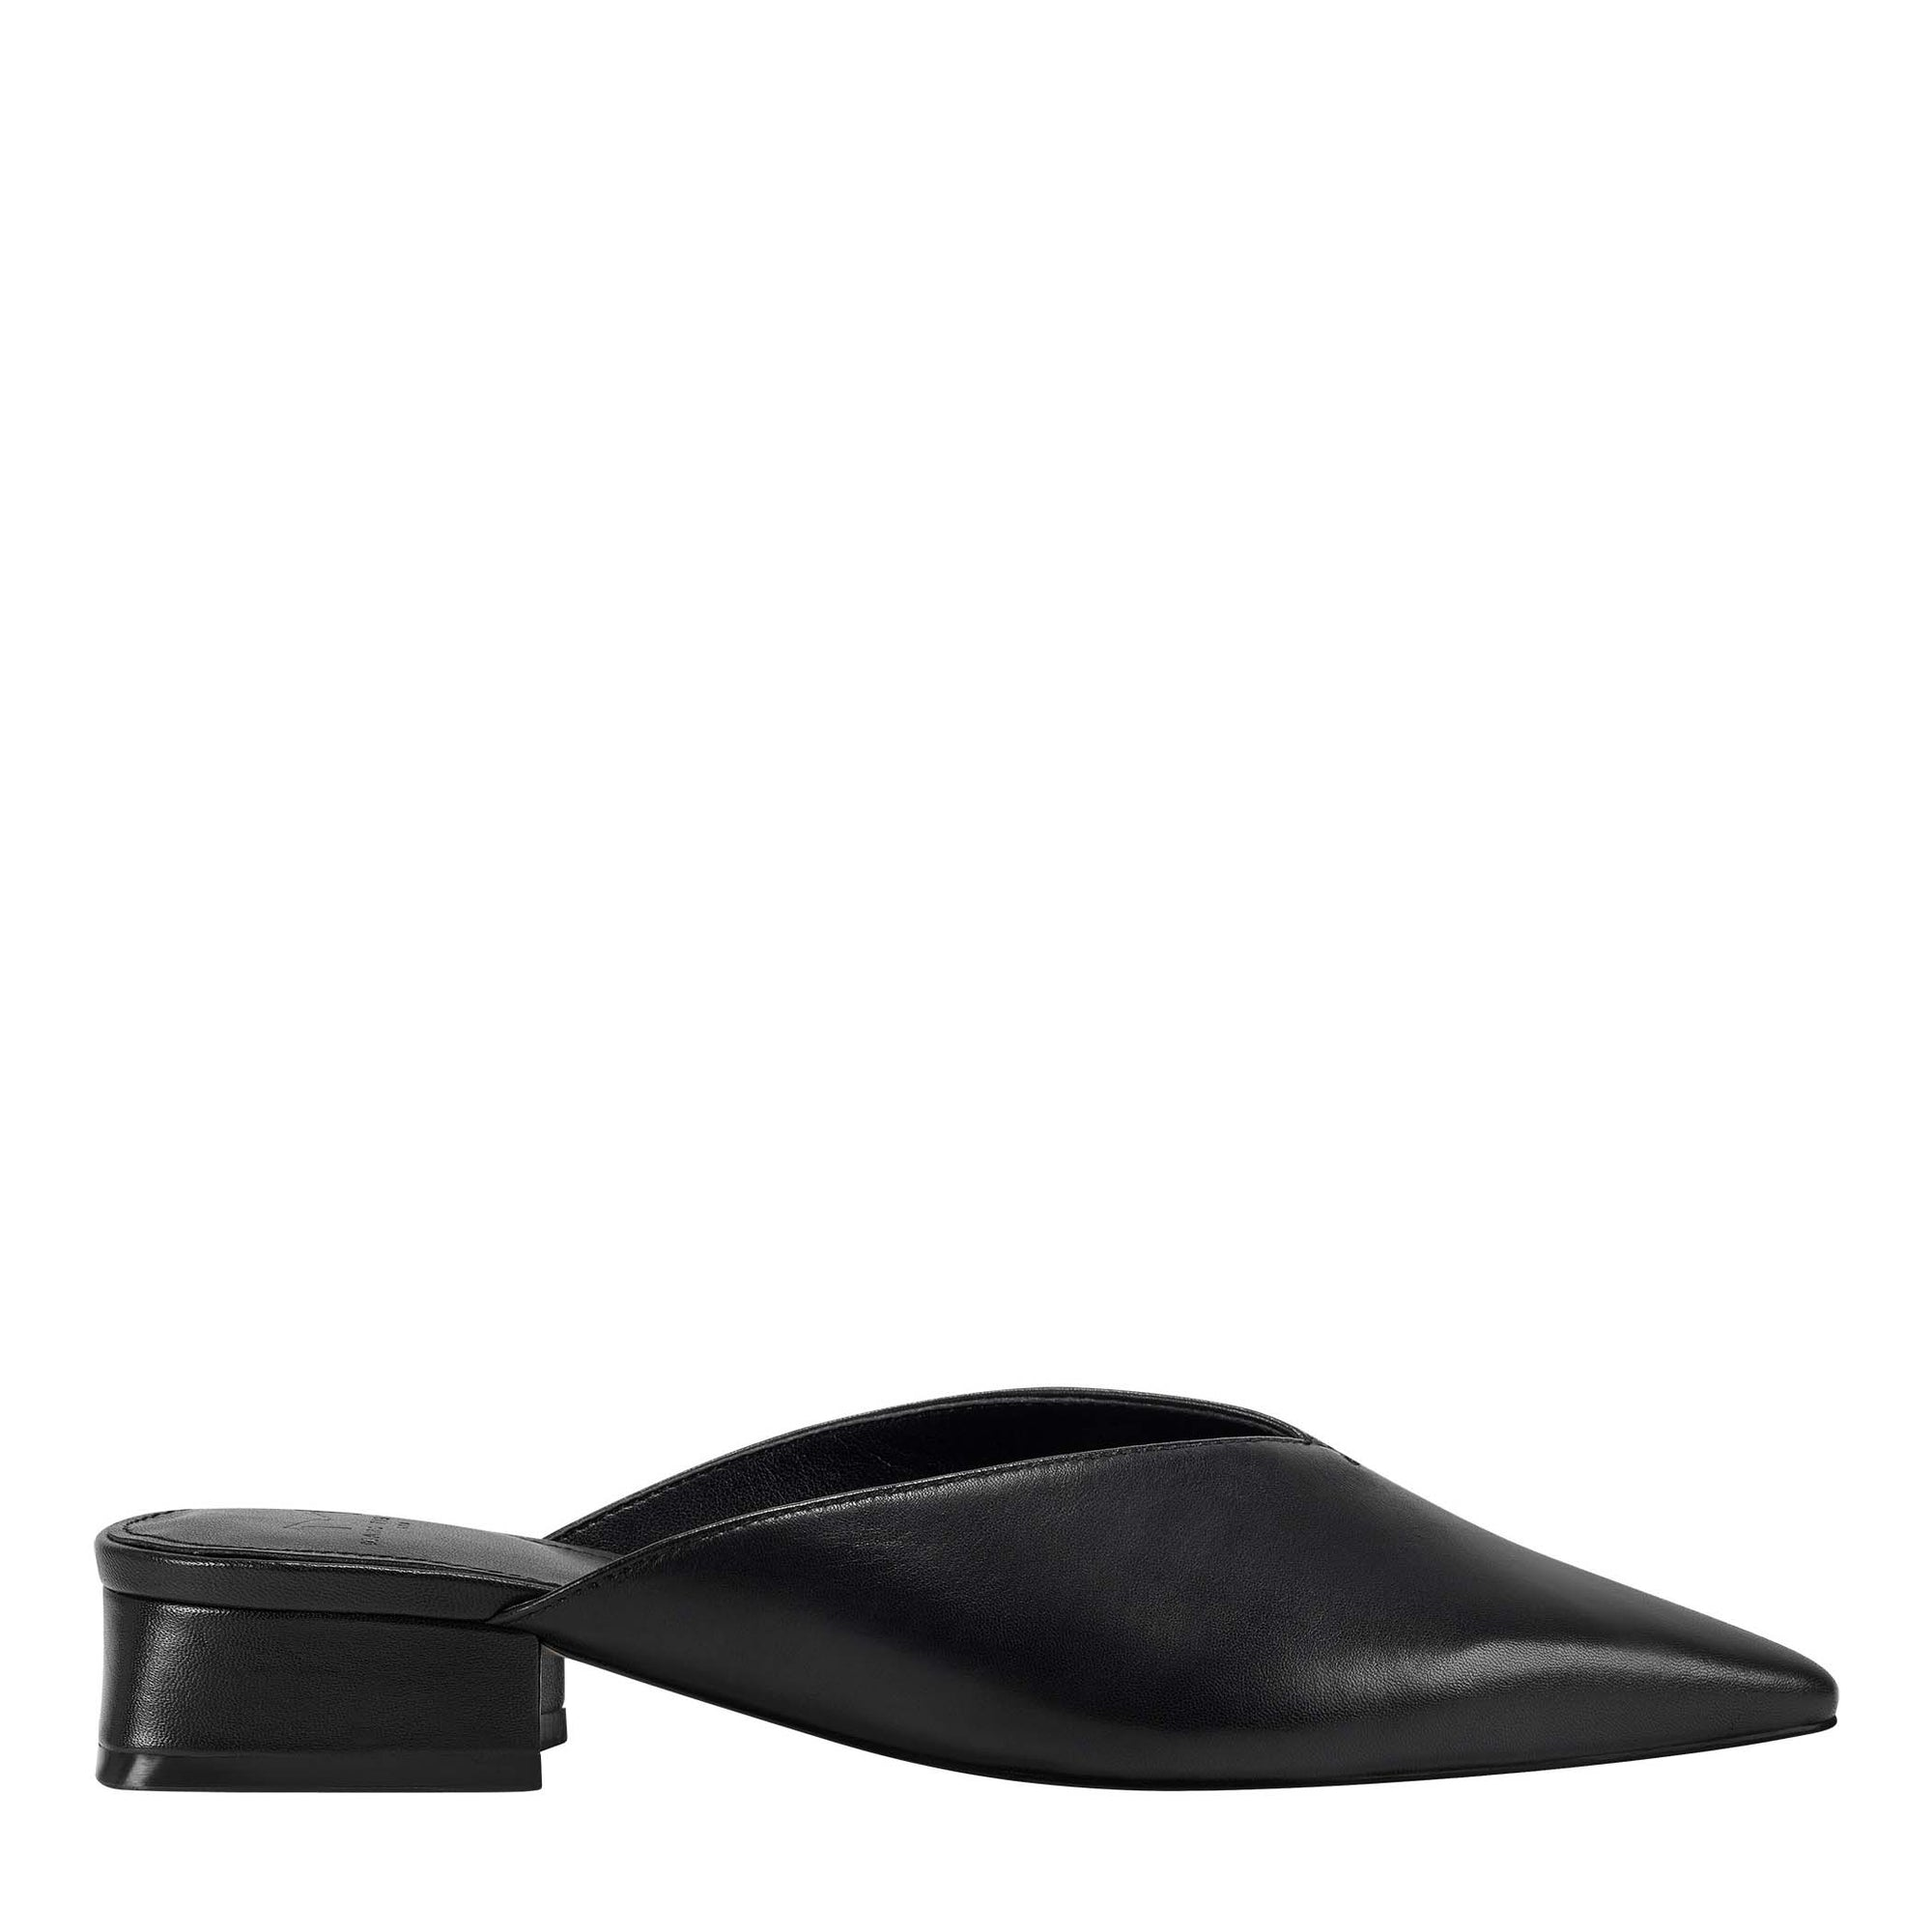 gilbert-pointy-toe-mule-in-black-leather